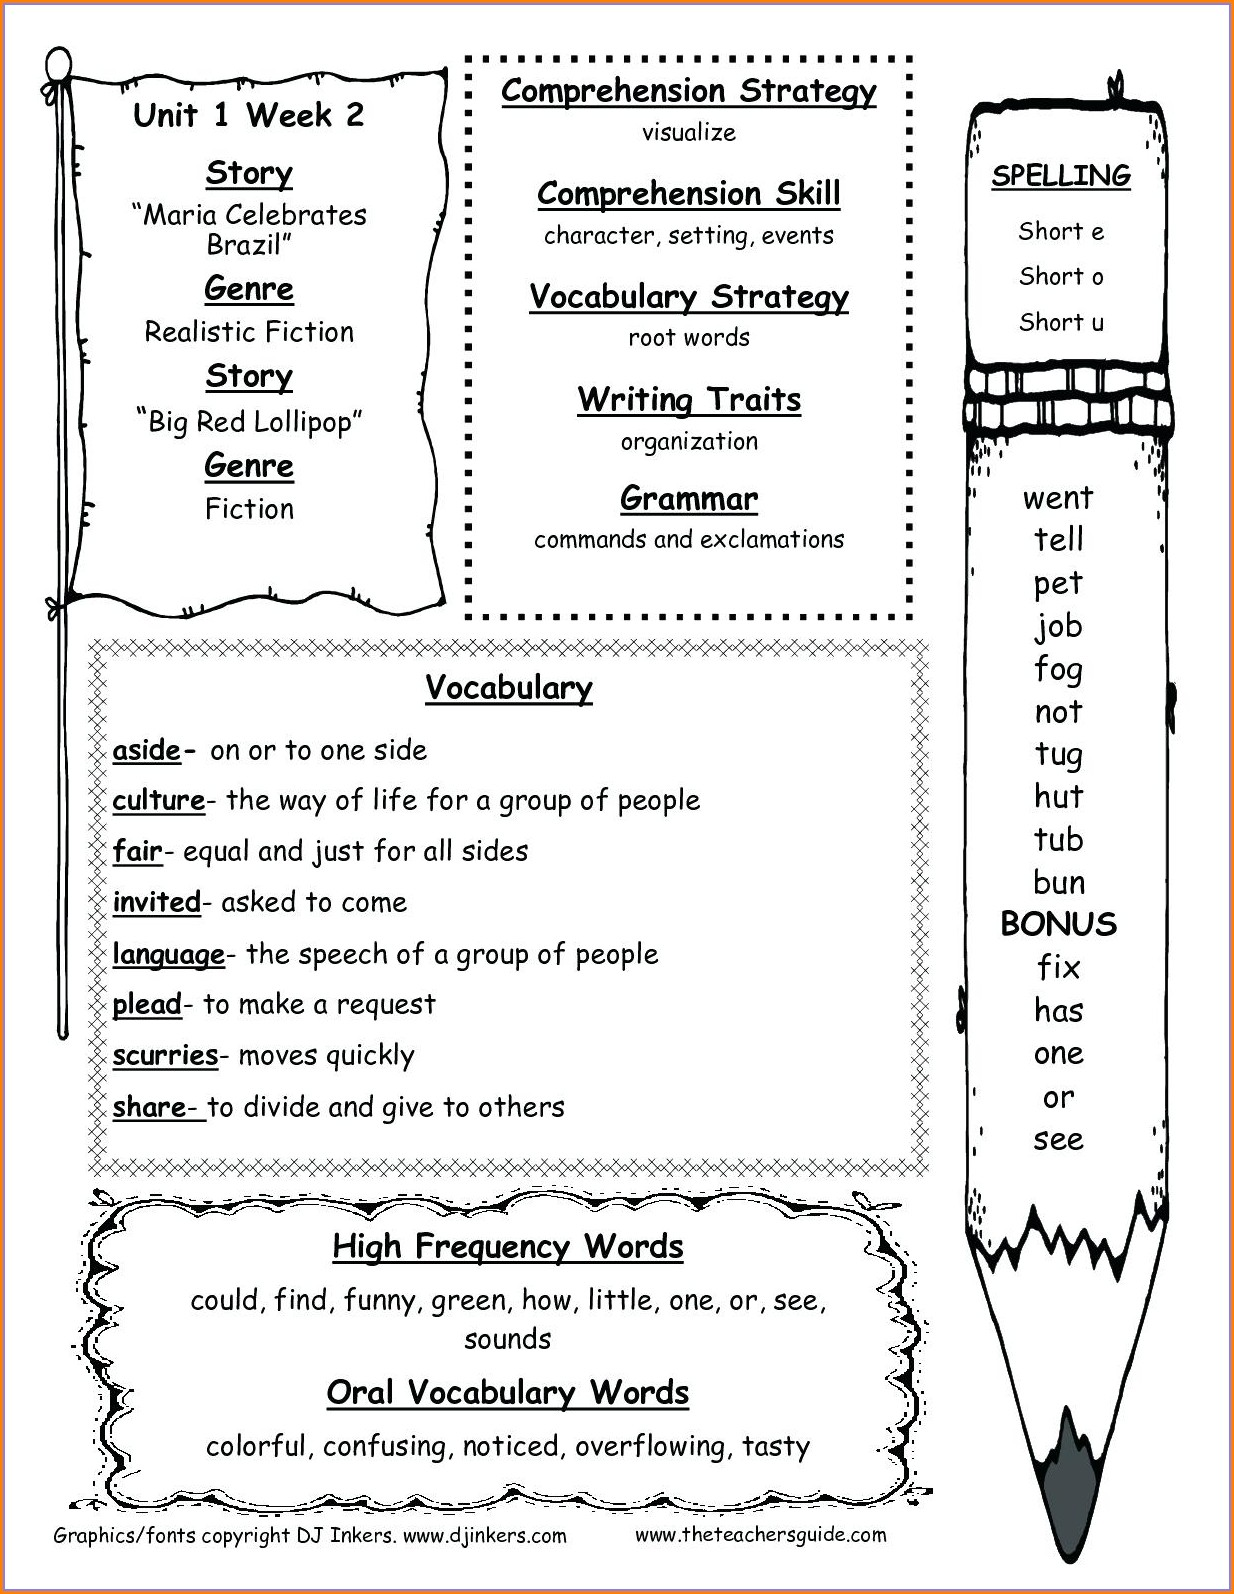 Cardinal Directions Worksheets Middle School Worksheet